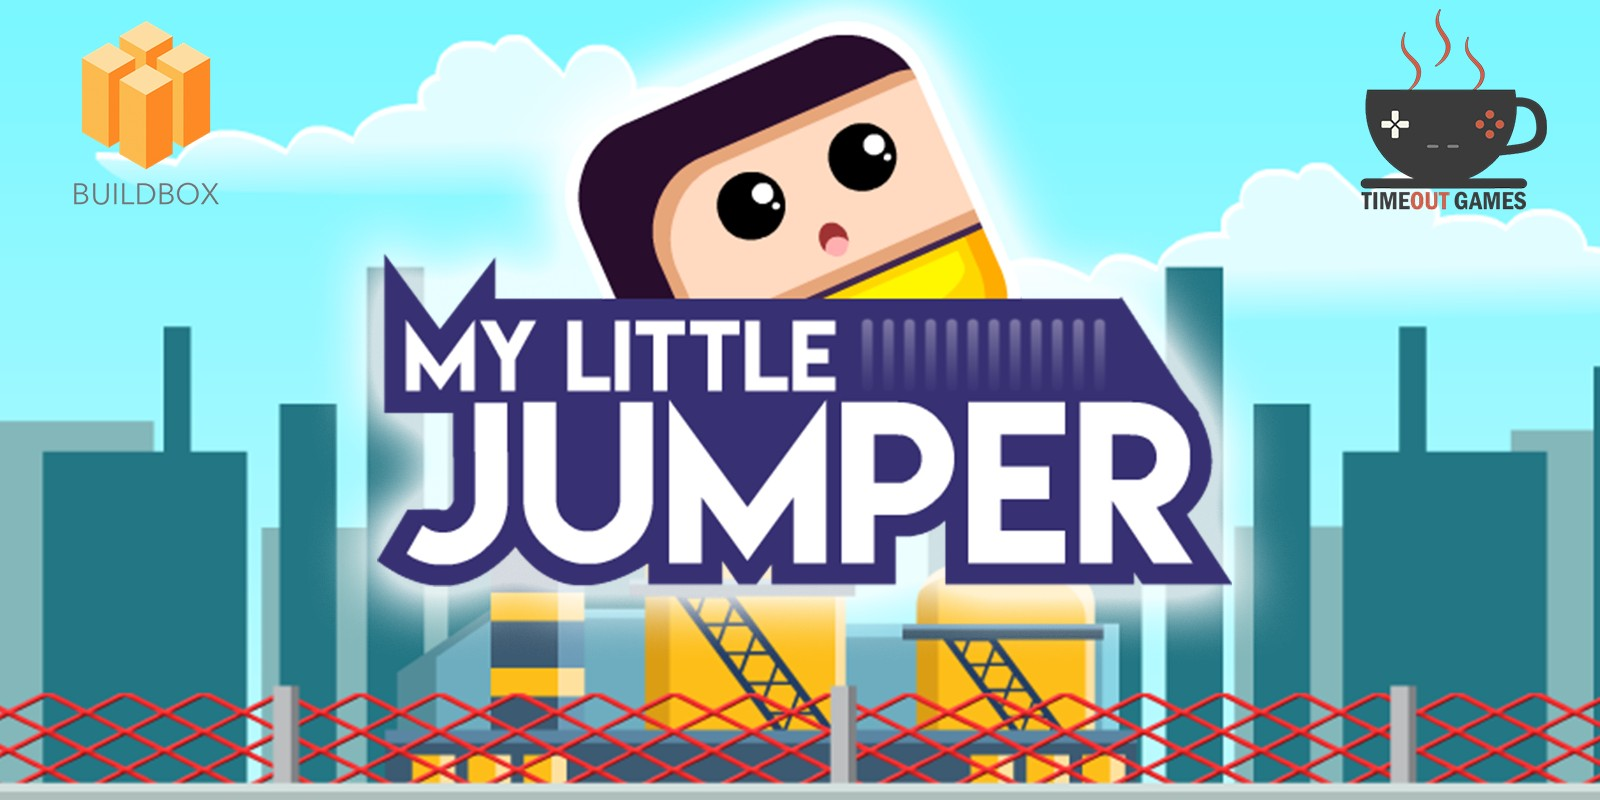 My little Jumper - Full Buildbox Game